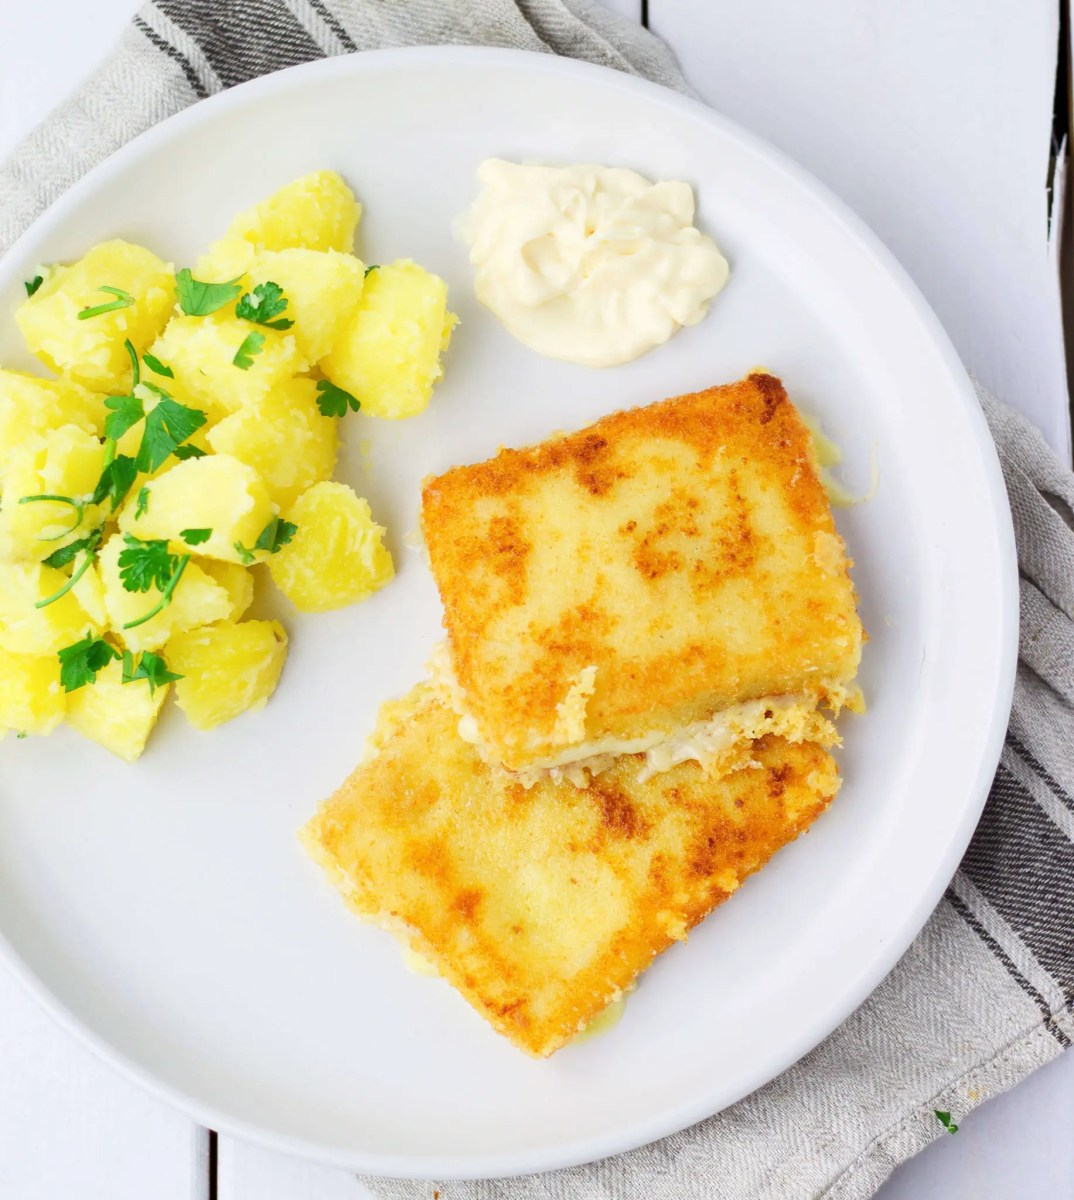 Fried Cheese (Slovak classic)